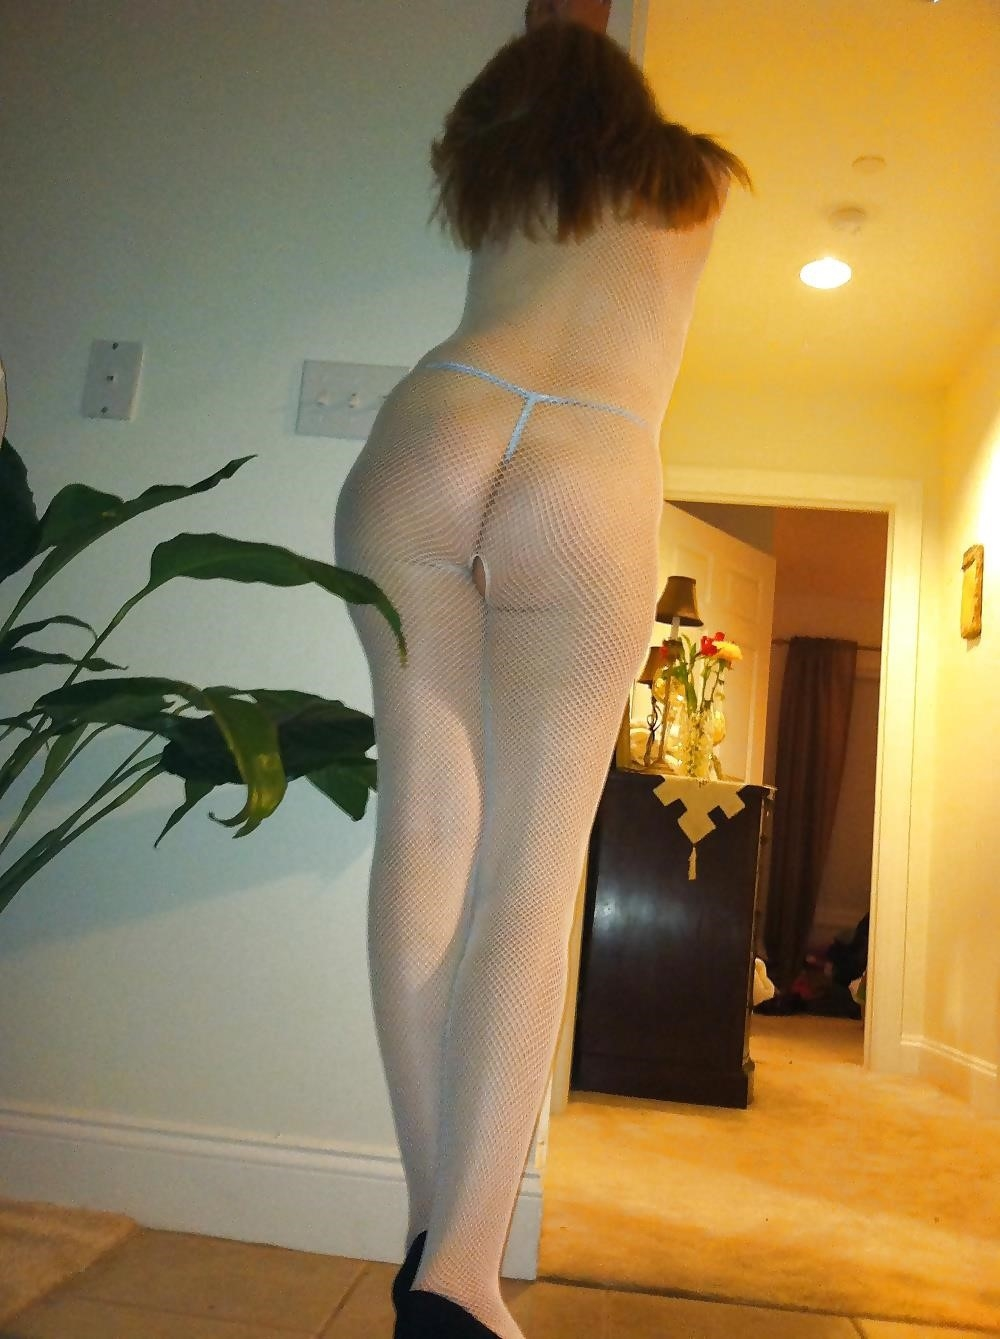 Sexiest women in the world nude-7772